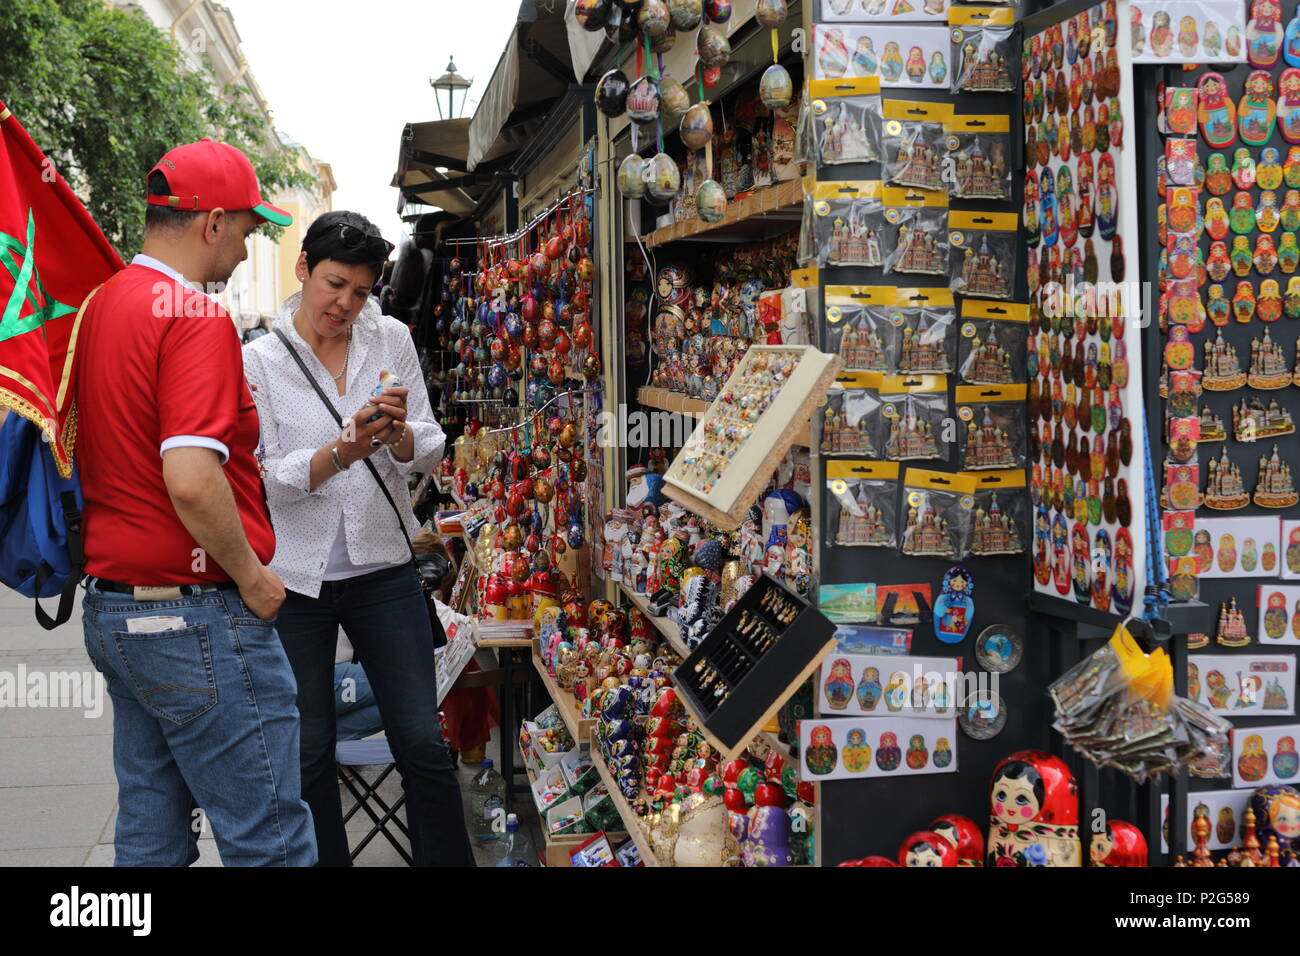 St. Petersburg, Russia, 15th June, 2018. Moroccan football fan buying Russian souvenirs in Saint-Petersburg on the day of first match of FIFA World Cup 2018 in the city. It is the match Morocco vs Iran Credit: StockphotoVideo/Alamy Live News - Stock Image